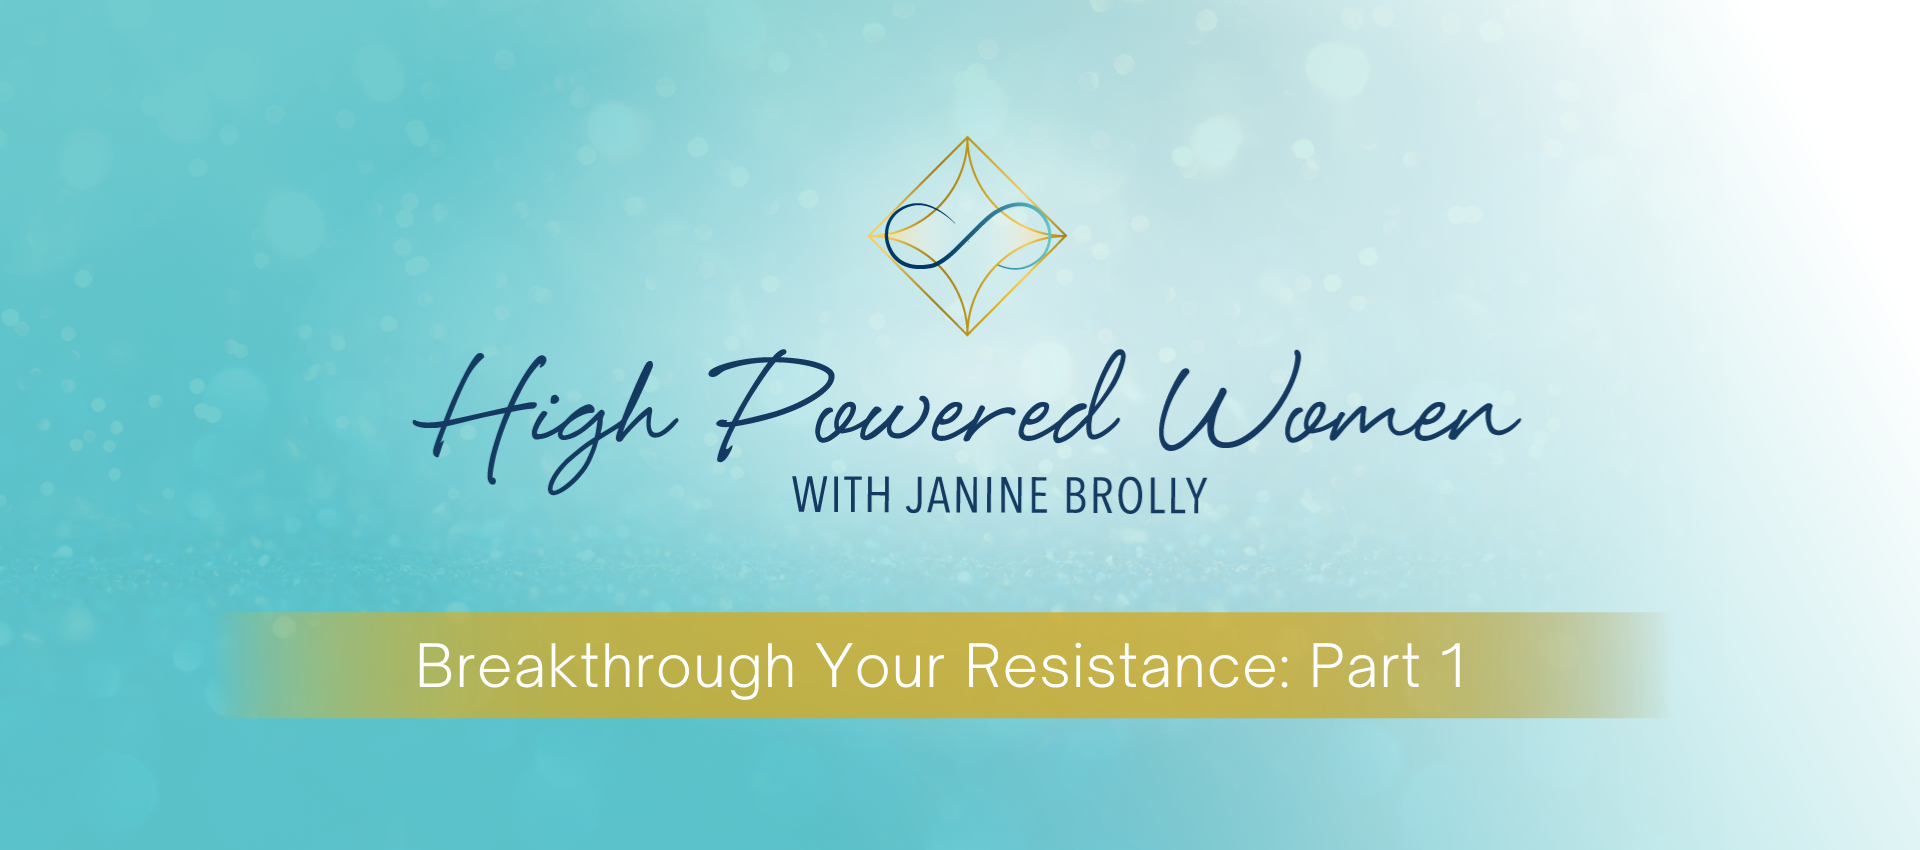 Breakthrough Your Resistance Part 1